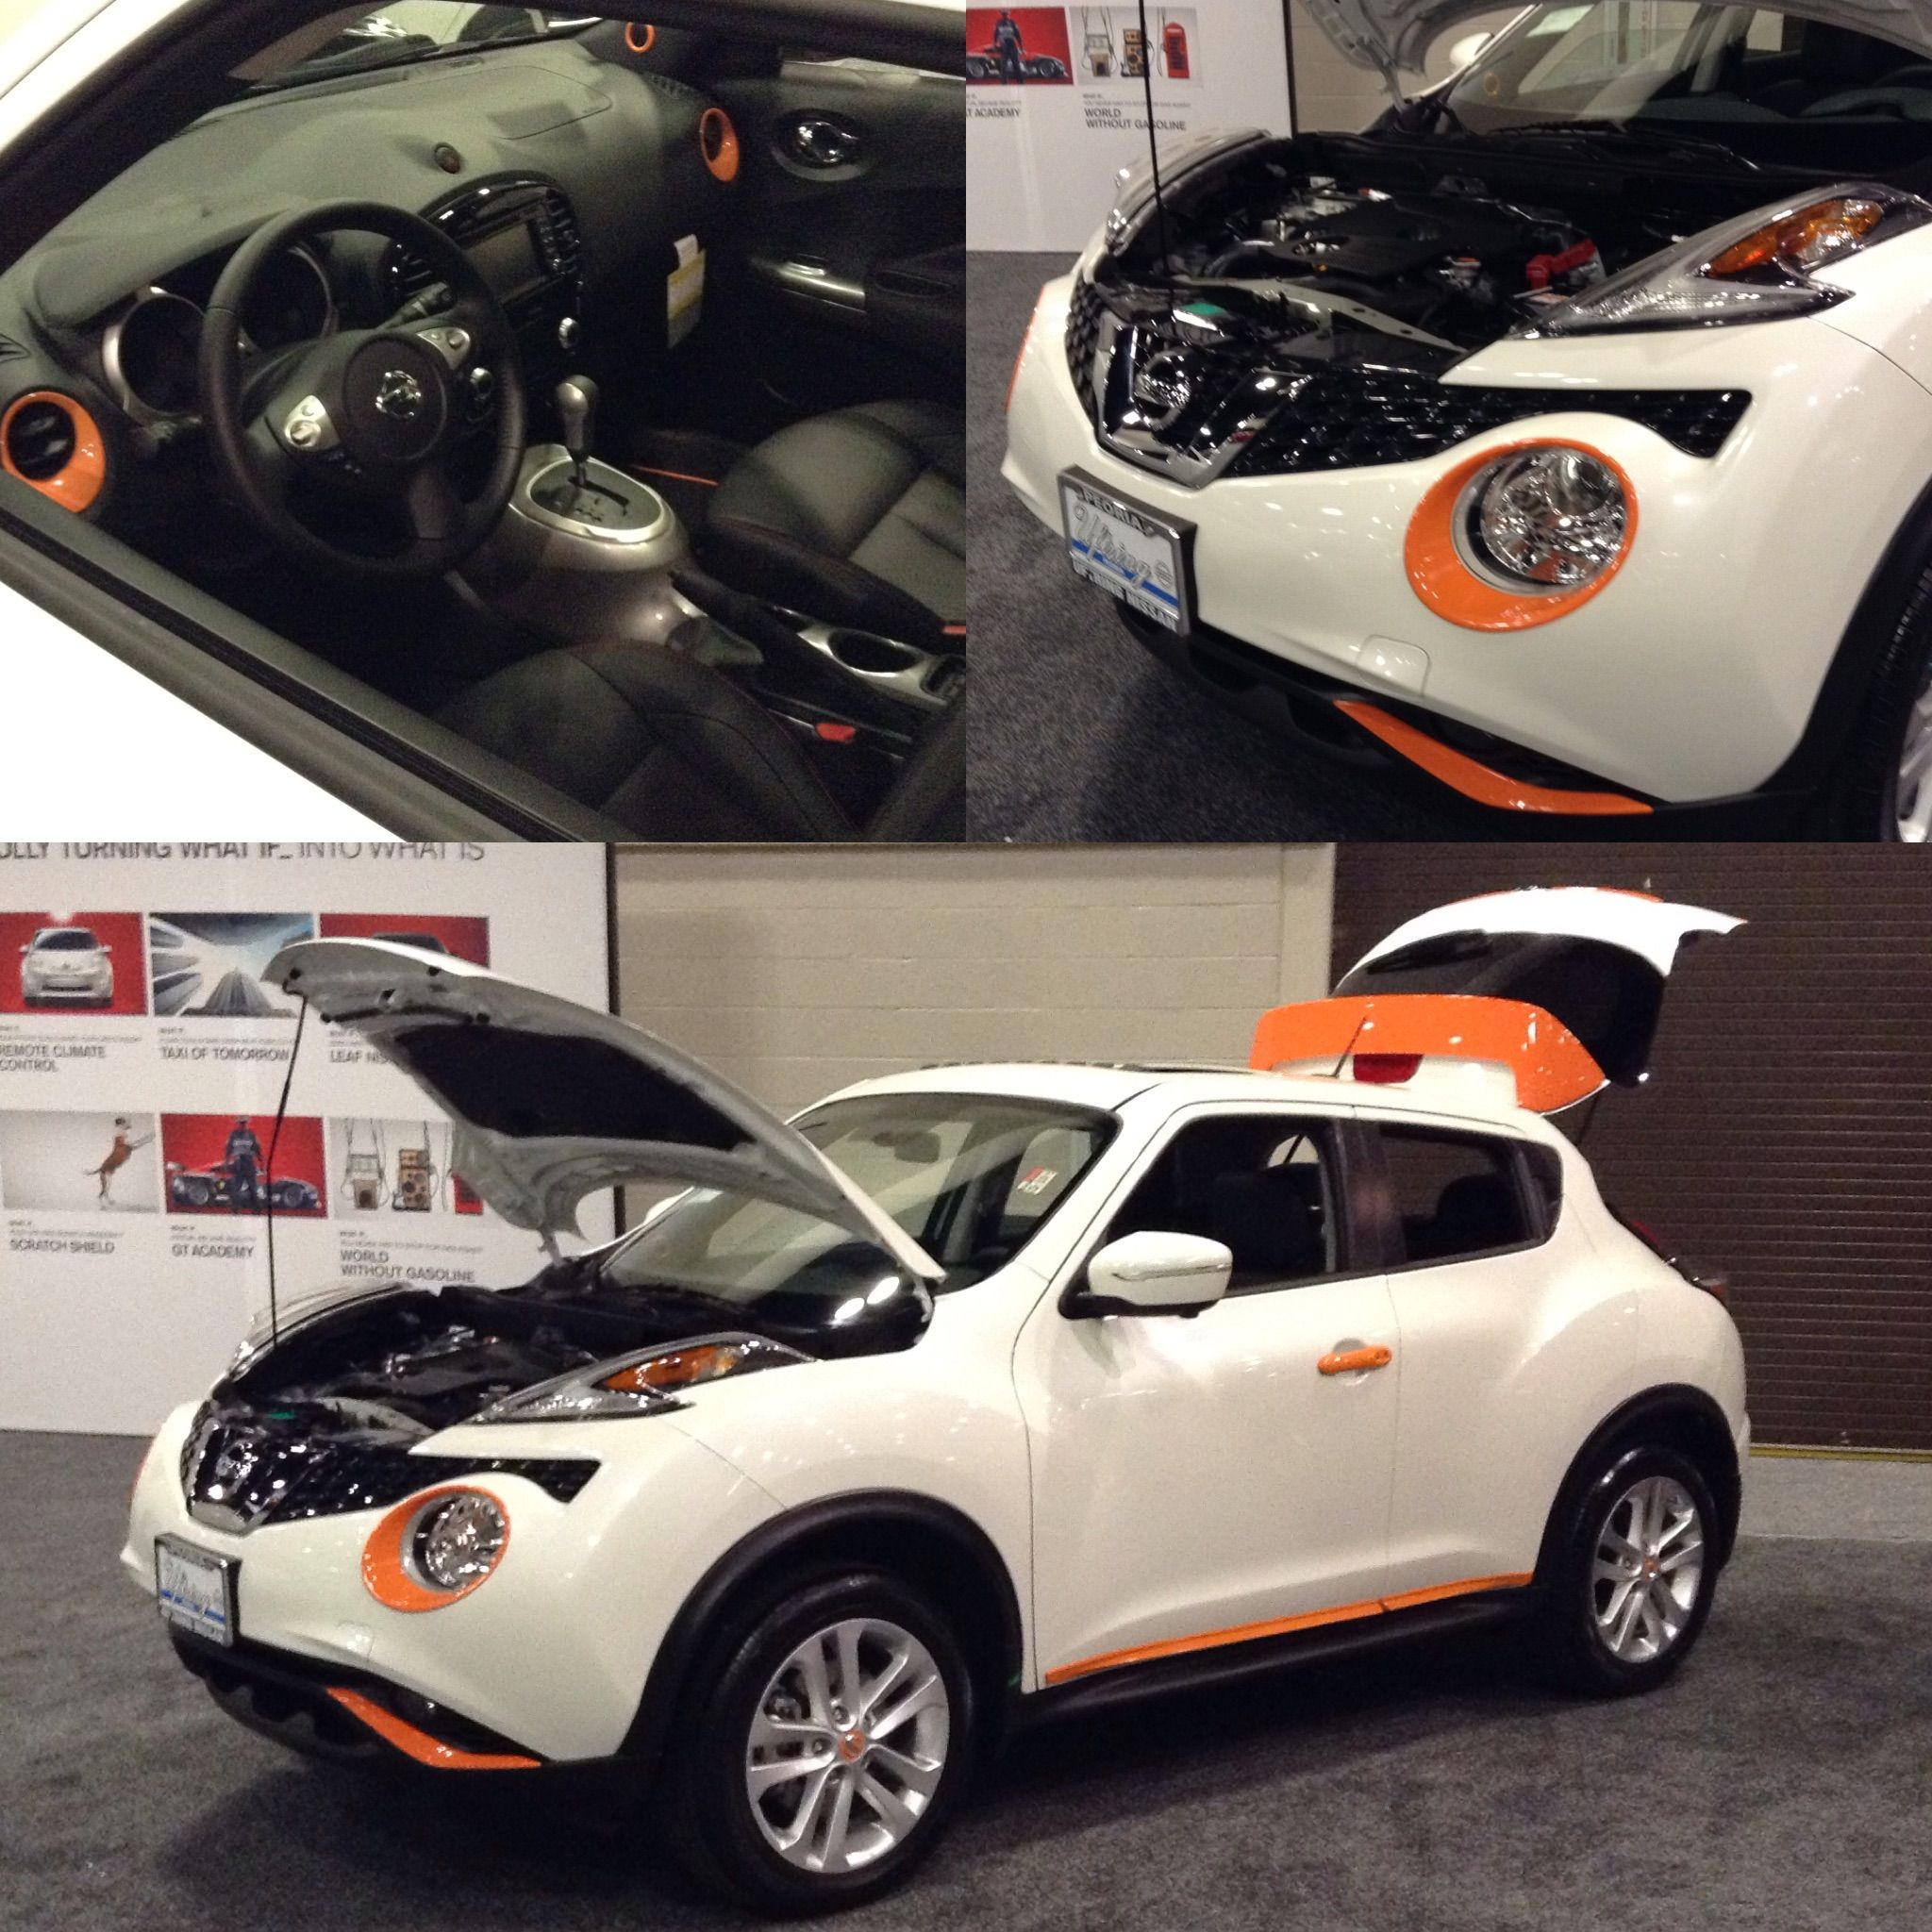 The New 2015 Nissan Juke Color Studio Lets You Choose Any Color Combination You Want For The All New 2015 Nissanjuke It Is Amazing At Nissan Juke Nissan Gtr